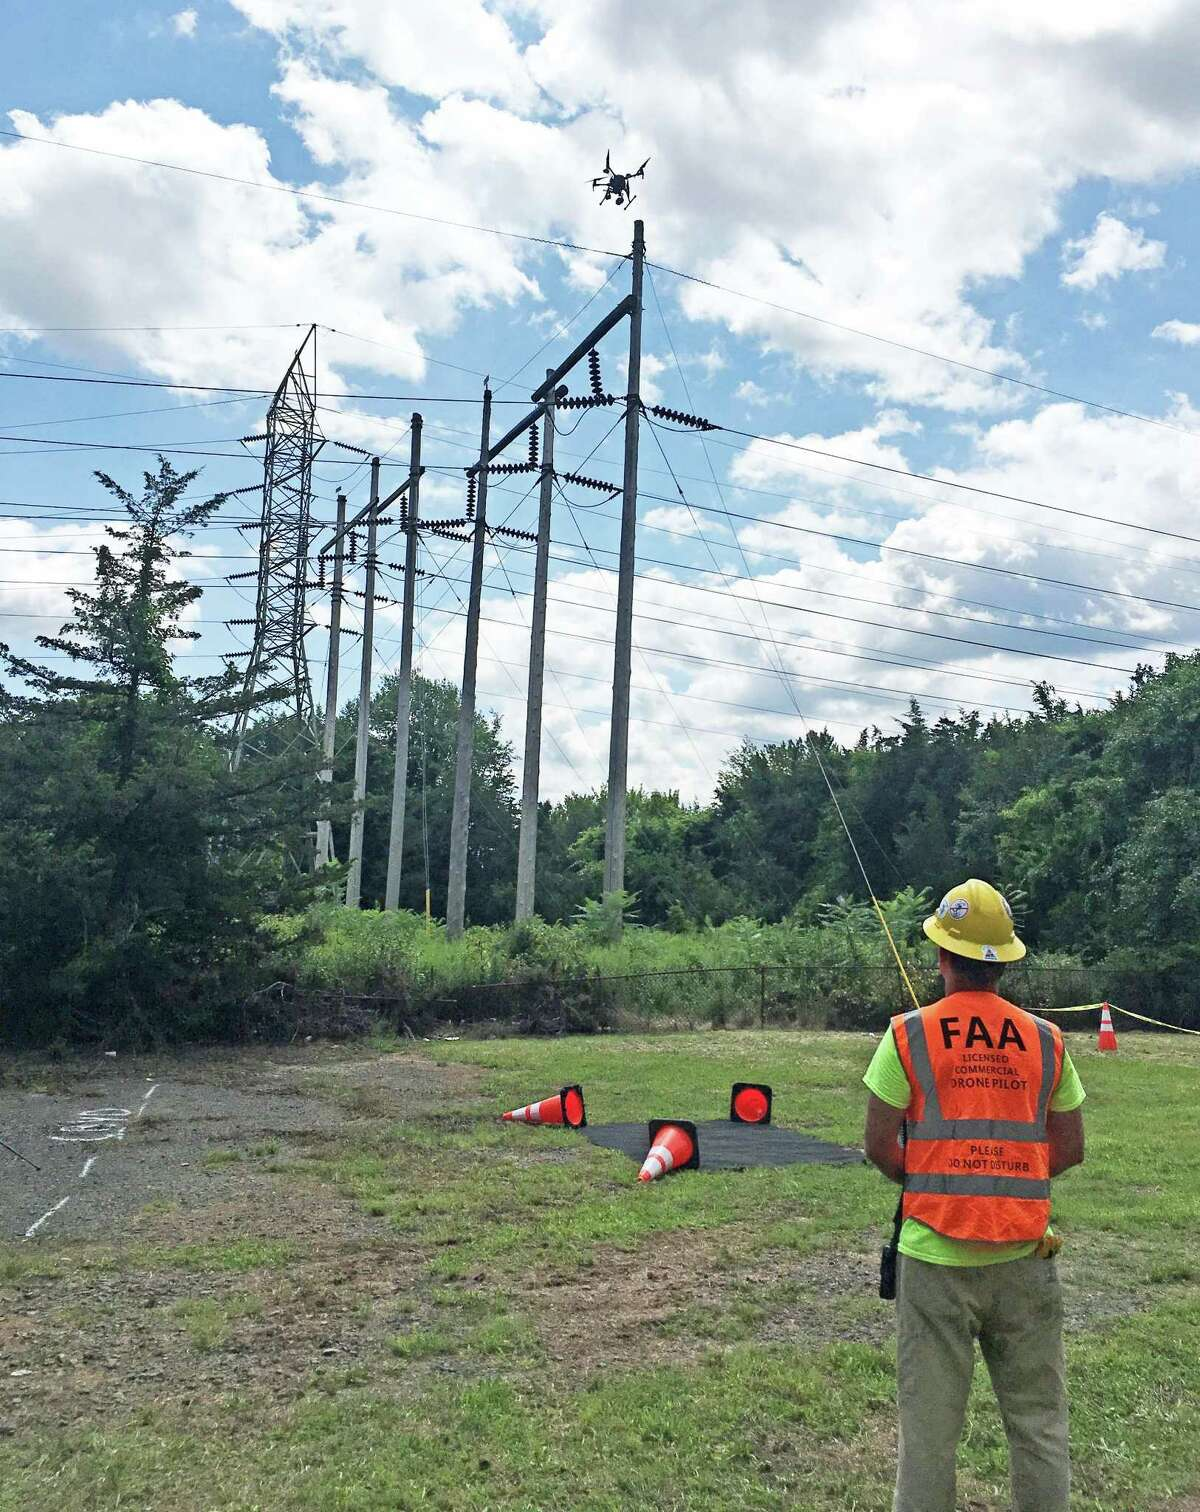 Eversource has begun employing drones to inspect electric lines in Connecticut, saying it will reduce costs and the impact on the environment caused by helicopters and trucks it uses.